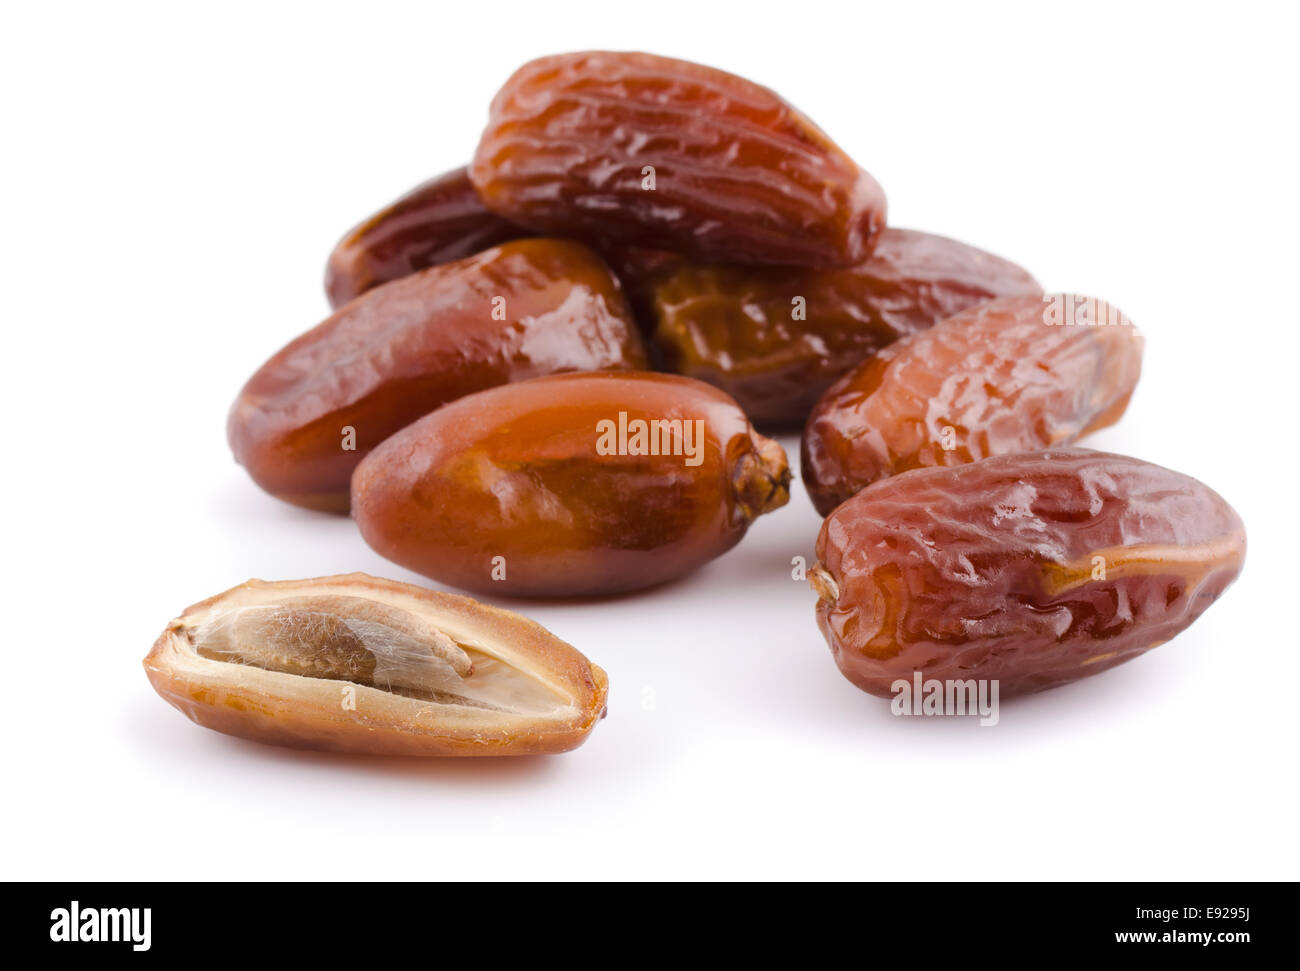 Date fruit - Stock Image